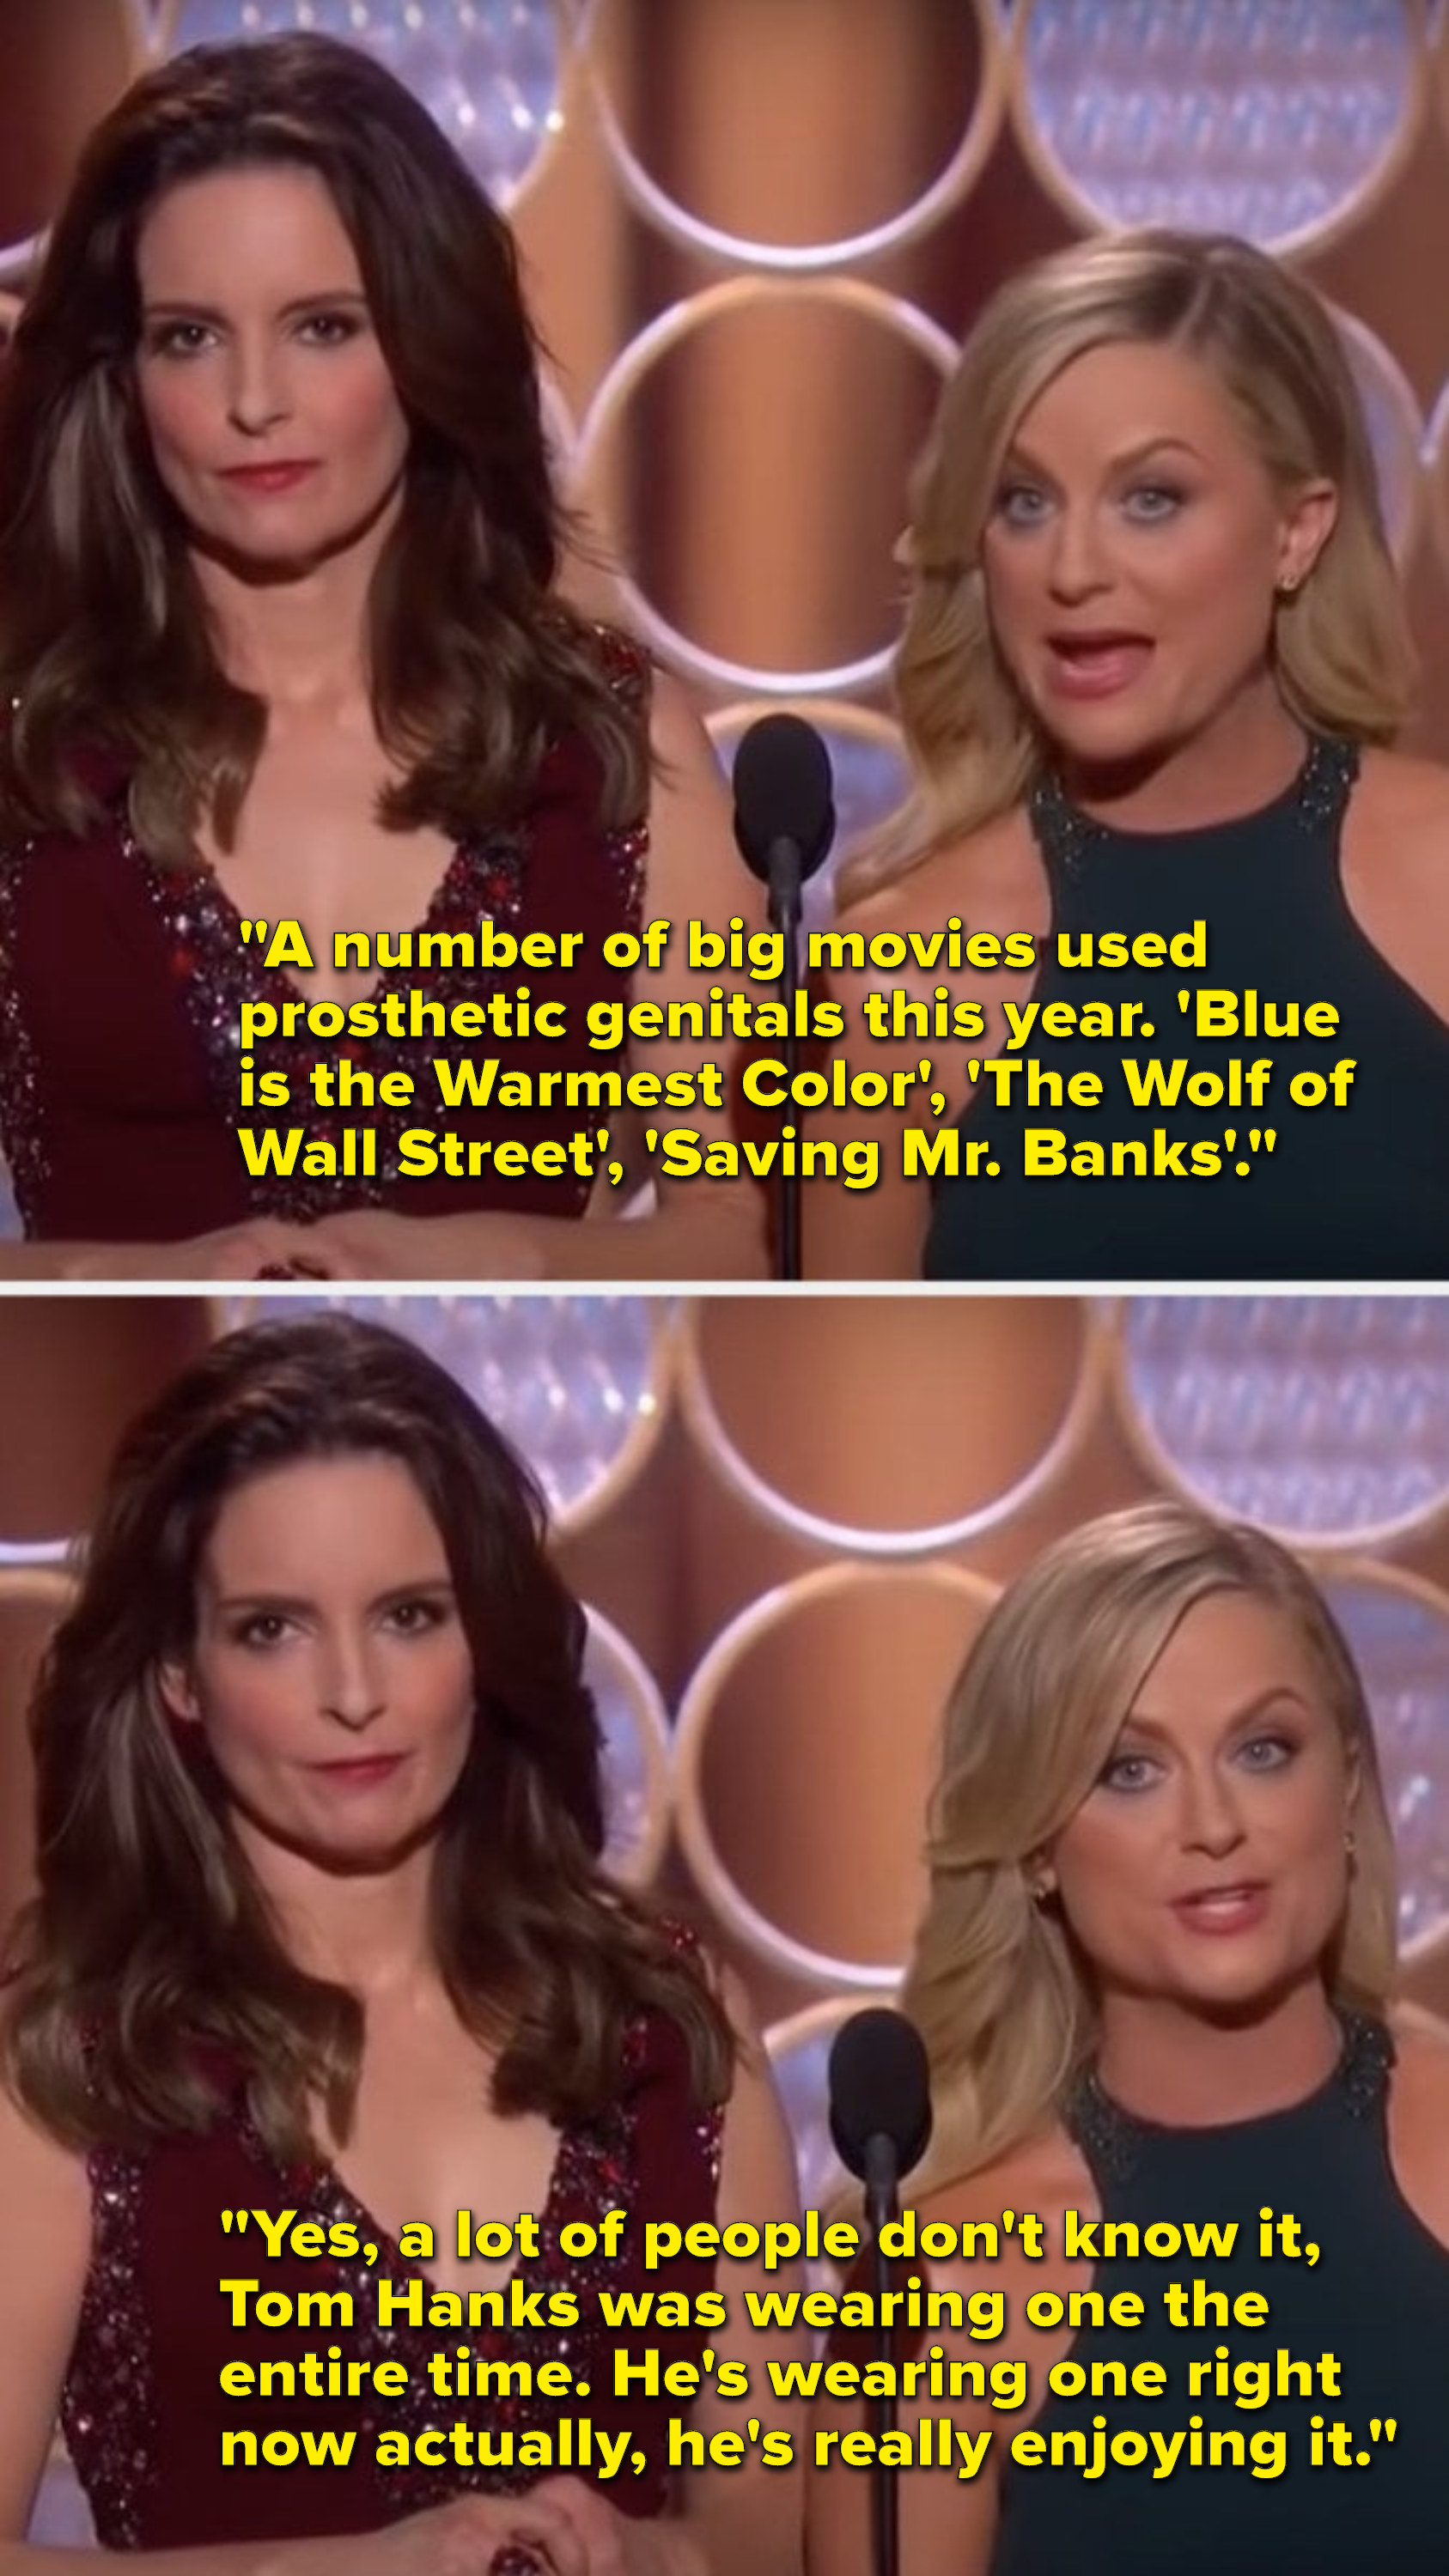 """Poehler says, """"A number of movies used prosthetic genitals this year, including 'Saving Mr. Banks', a lot of people don't know, Tom Hanks was wearing one the entire time, he's wearing one right now actually, he's really enjoying it"""""""